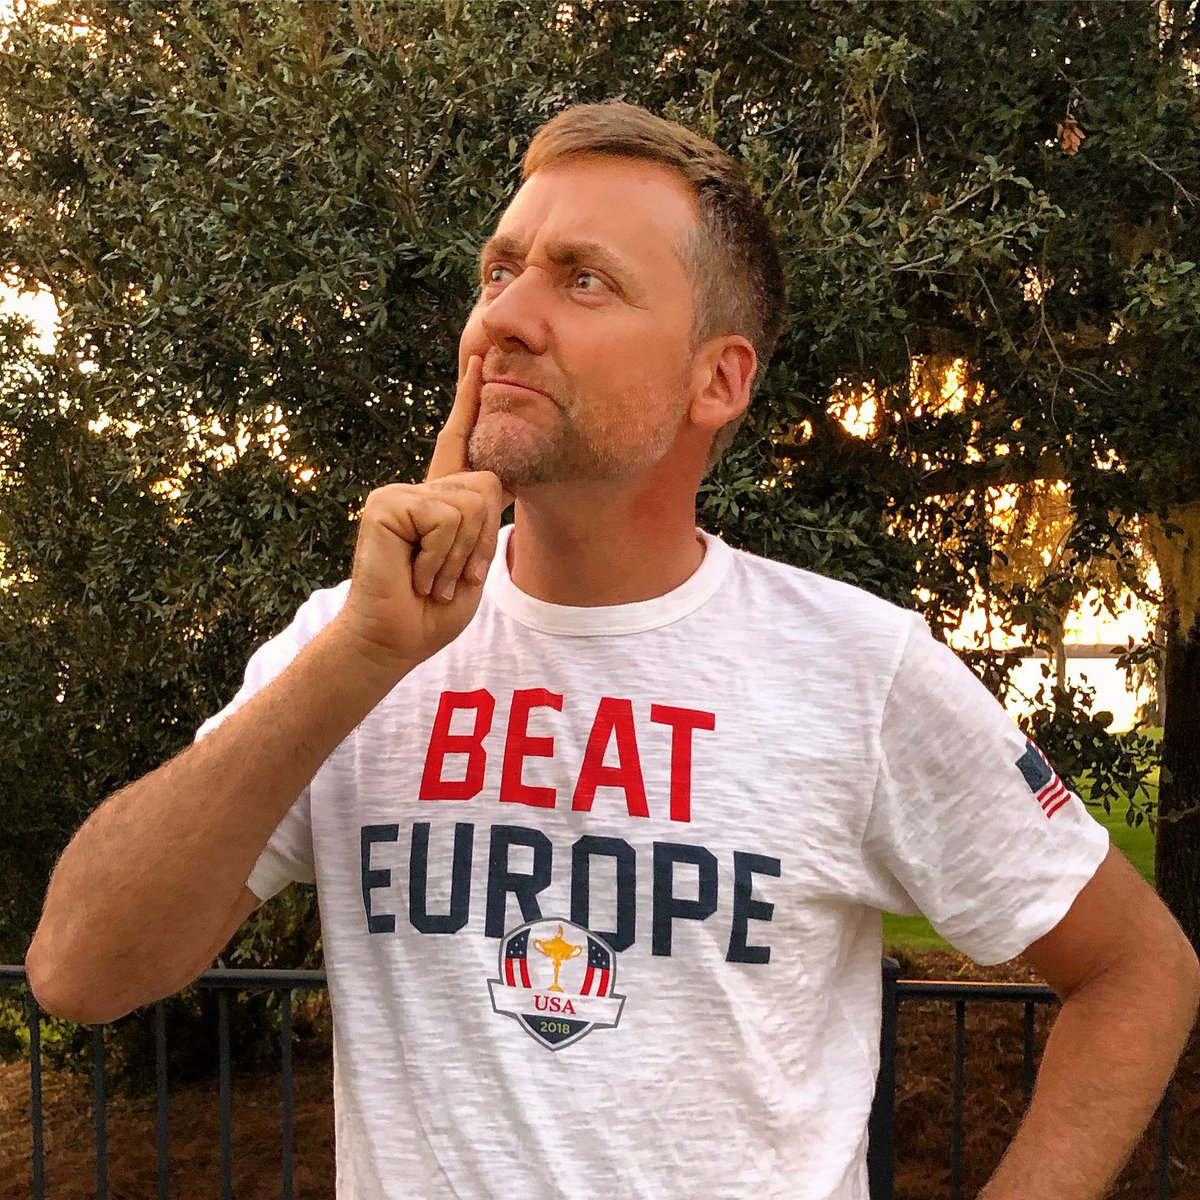 Ian Poulter daggers U.S. Ryder Cup team with savage T-shirt to rub in the European win in France